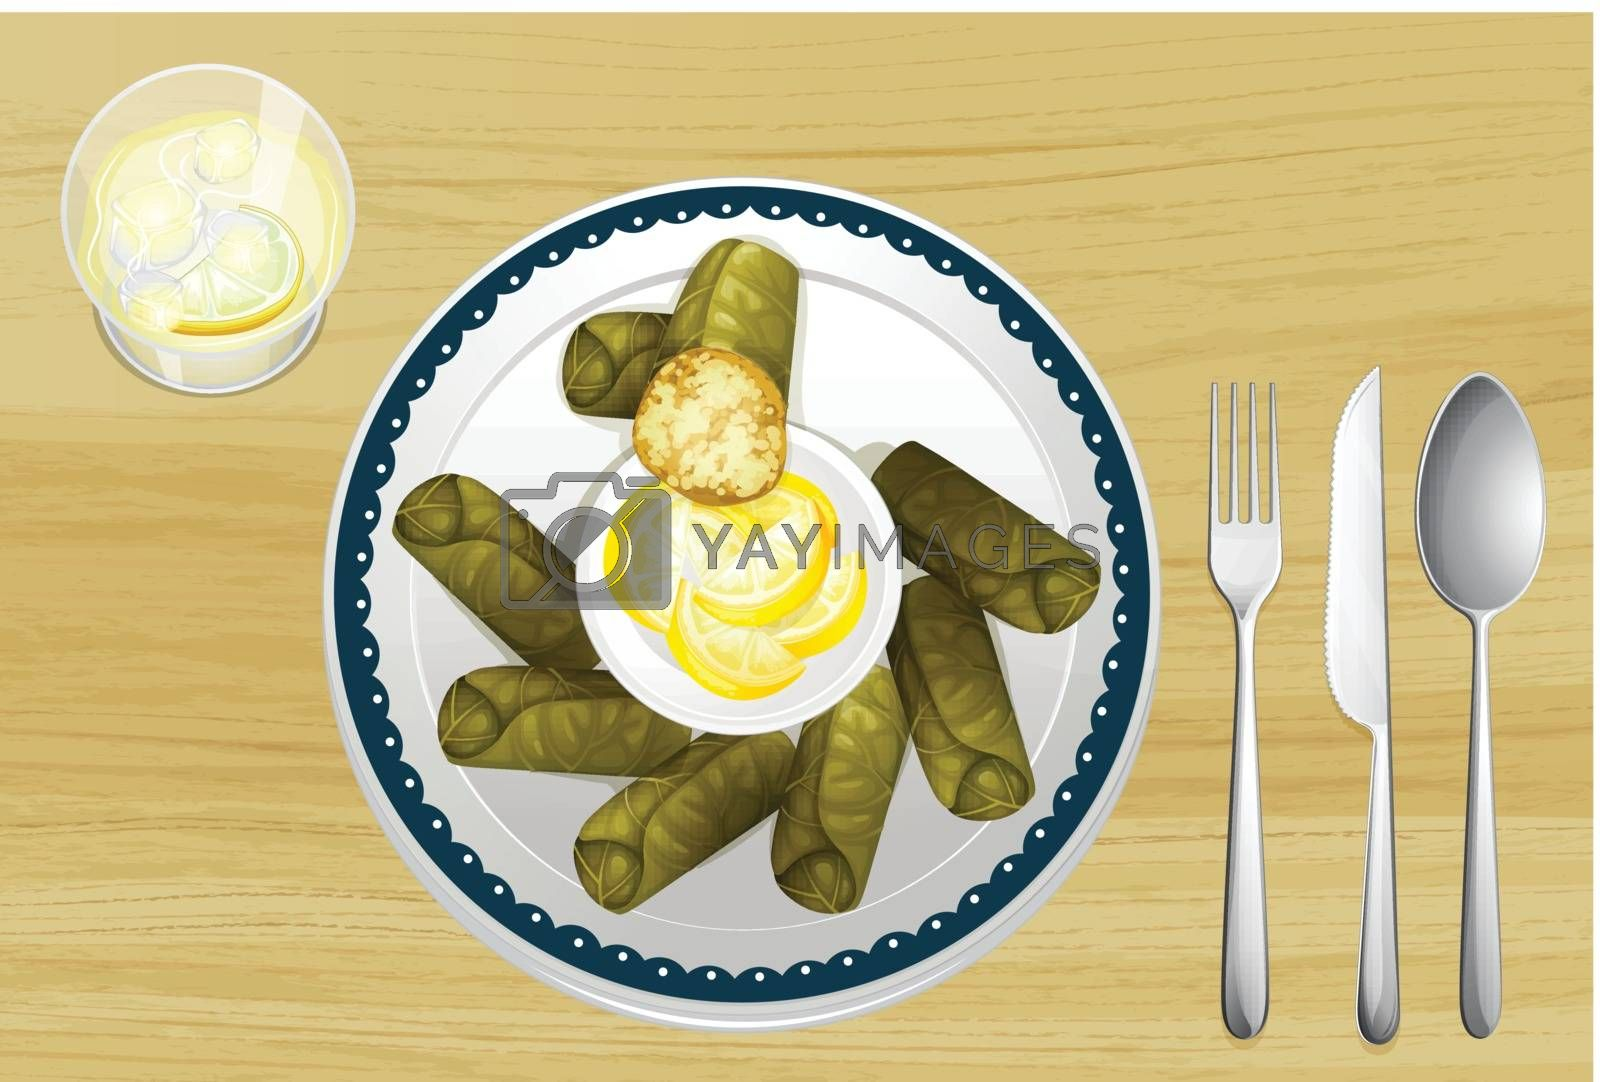 Illustration of a salad in a dish on a wooden background